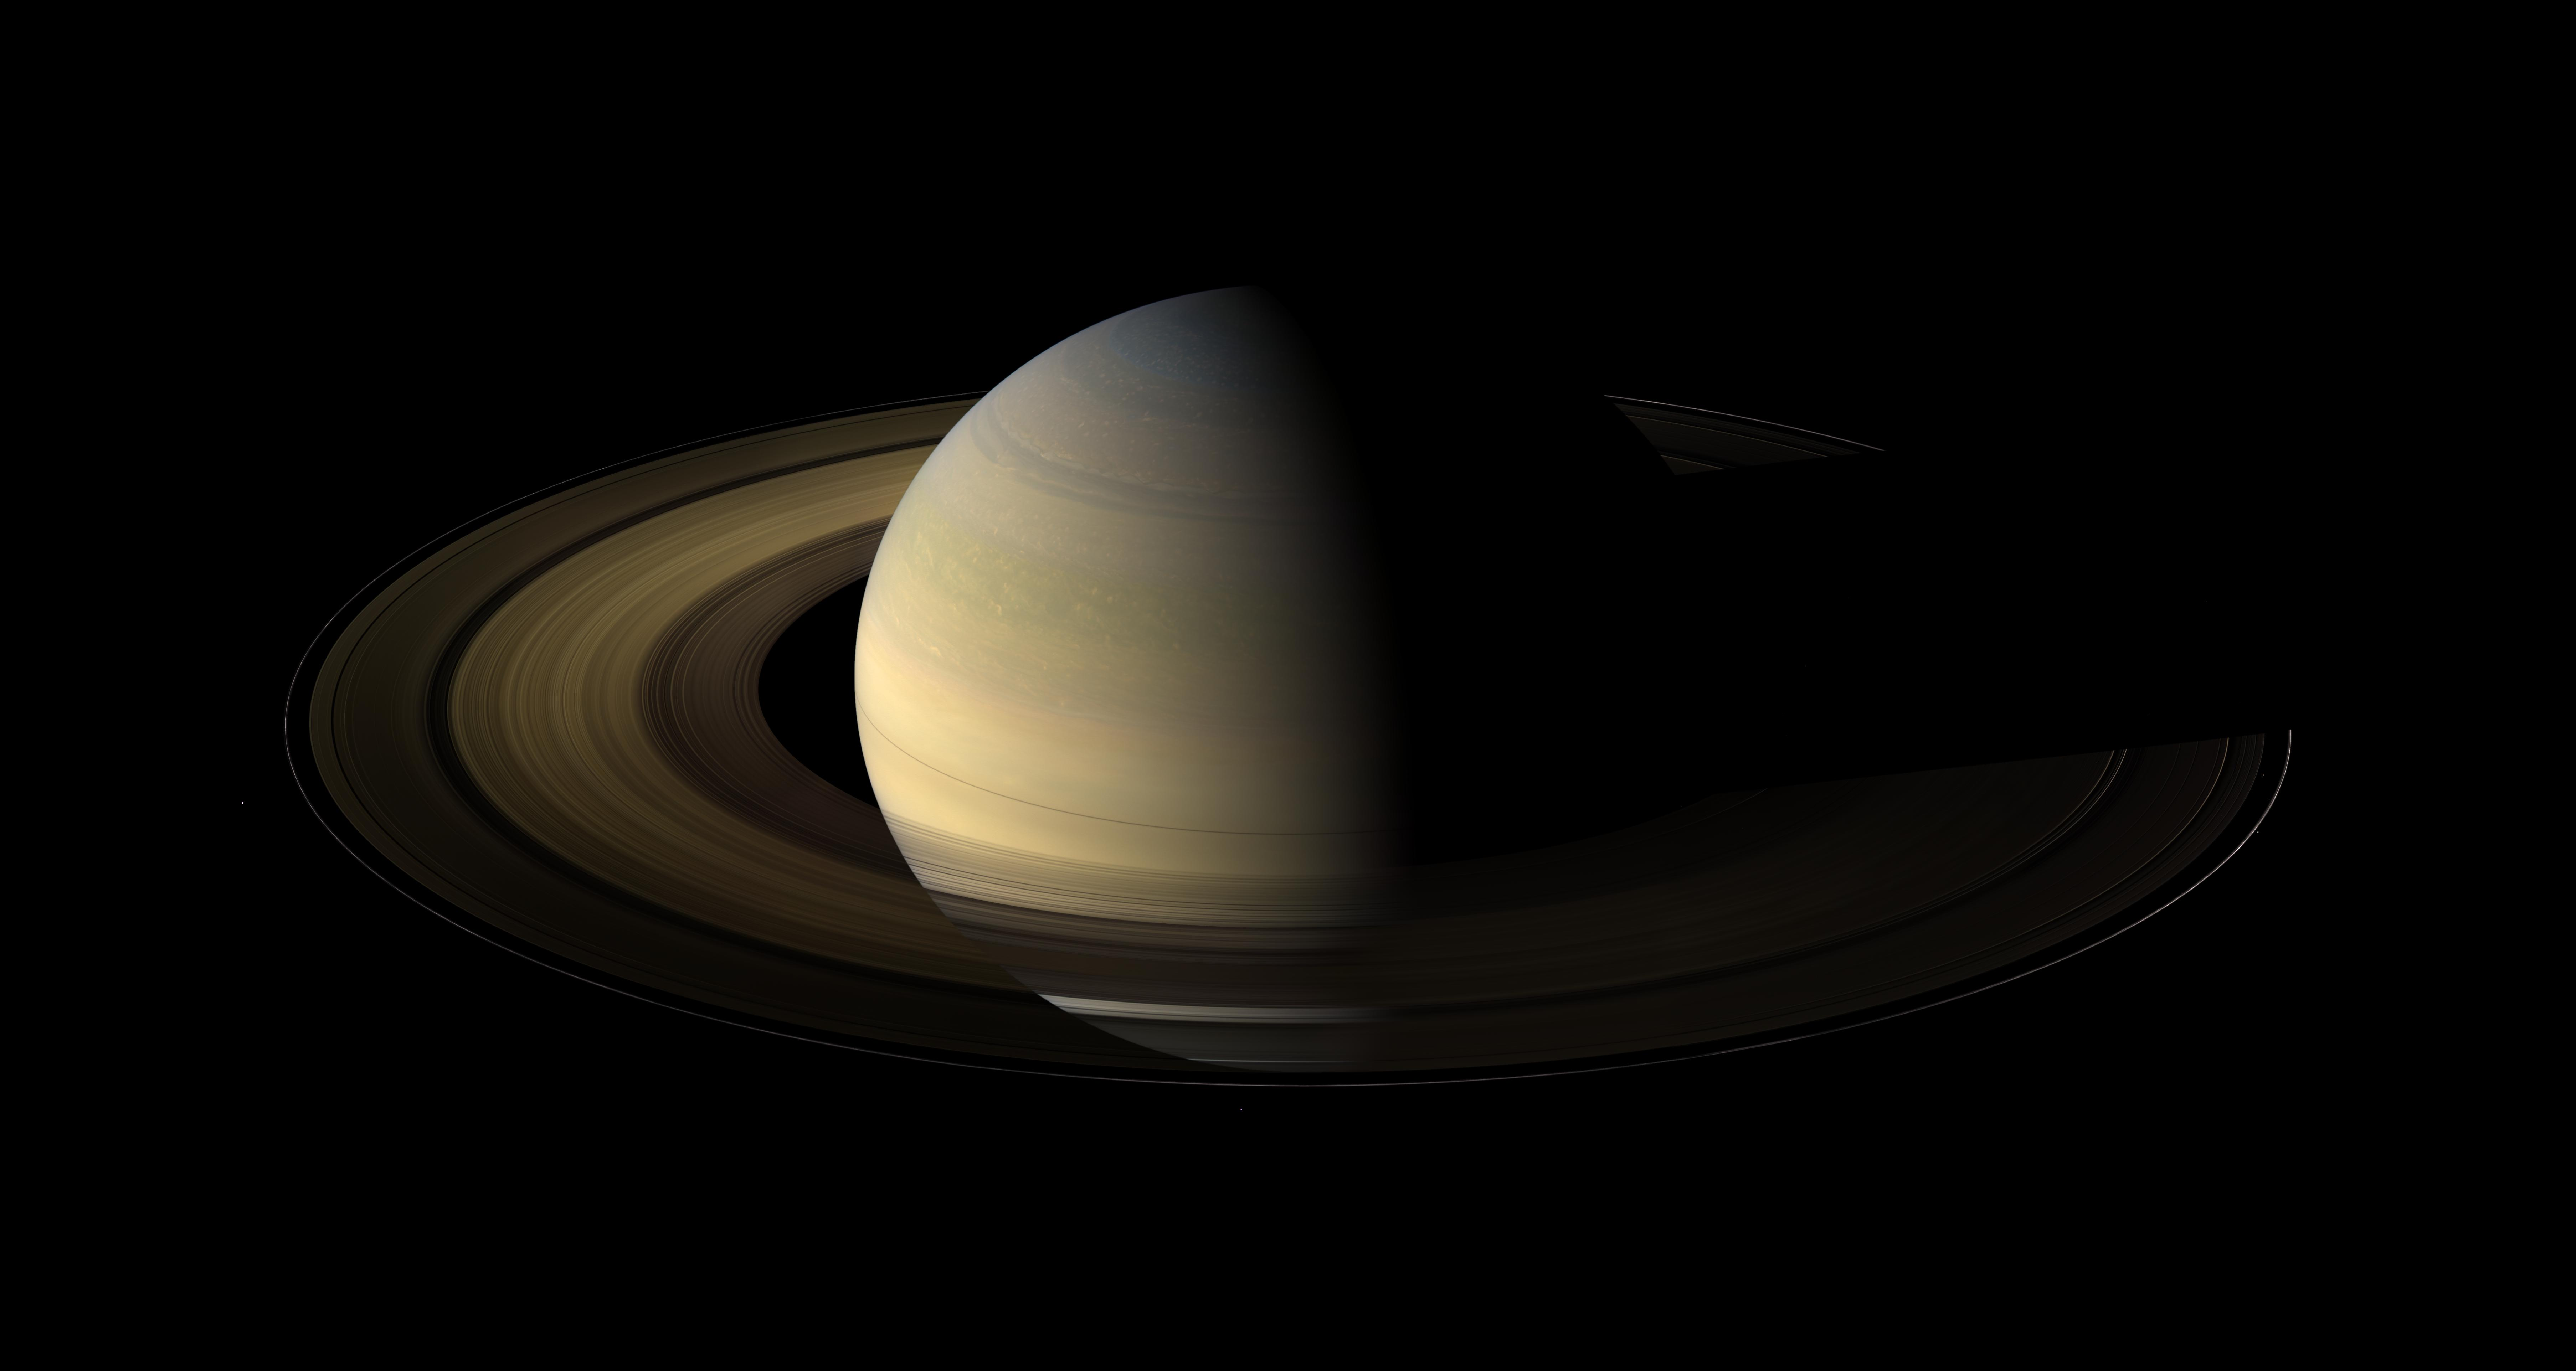 Of the countless equinoxes Saturn has seen since the birth of the solar system, this one, captured here in a mosaic of light and dark, is the first witnessed up close by an emissary from Earth … none other than our faithful robotic explorer, Cassini.